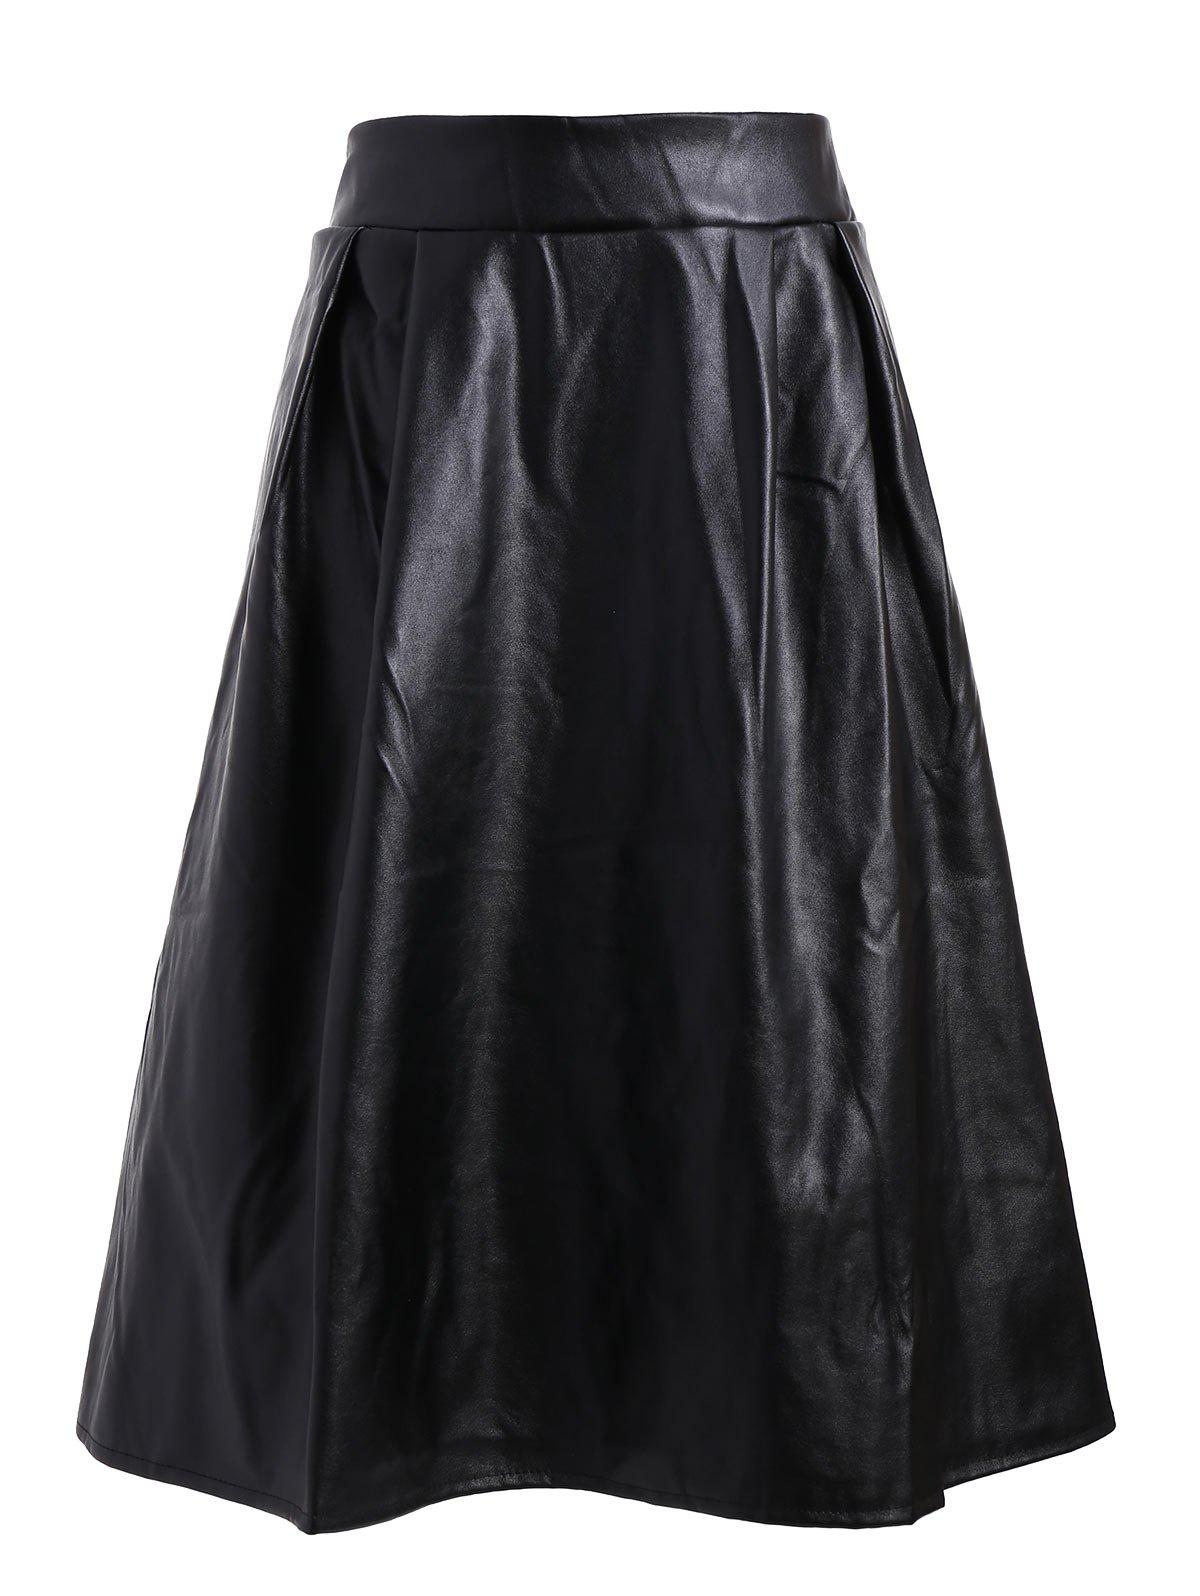 Plus Size Midi Faux Leather SkirtWOMEN<br><br>Size: 3XL; Color: BLACK; Material: Cotton,Polyester,PU; Length: Mid-Calf; Silhouette: A-Line; Pattern Type: Solid; Season: Fall; Weight: 0.4500kg; Package Contents: 1 x Skirt;